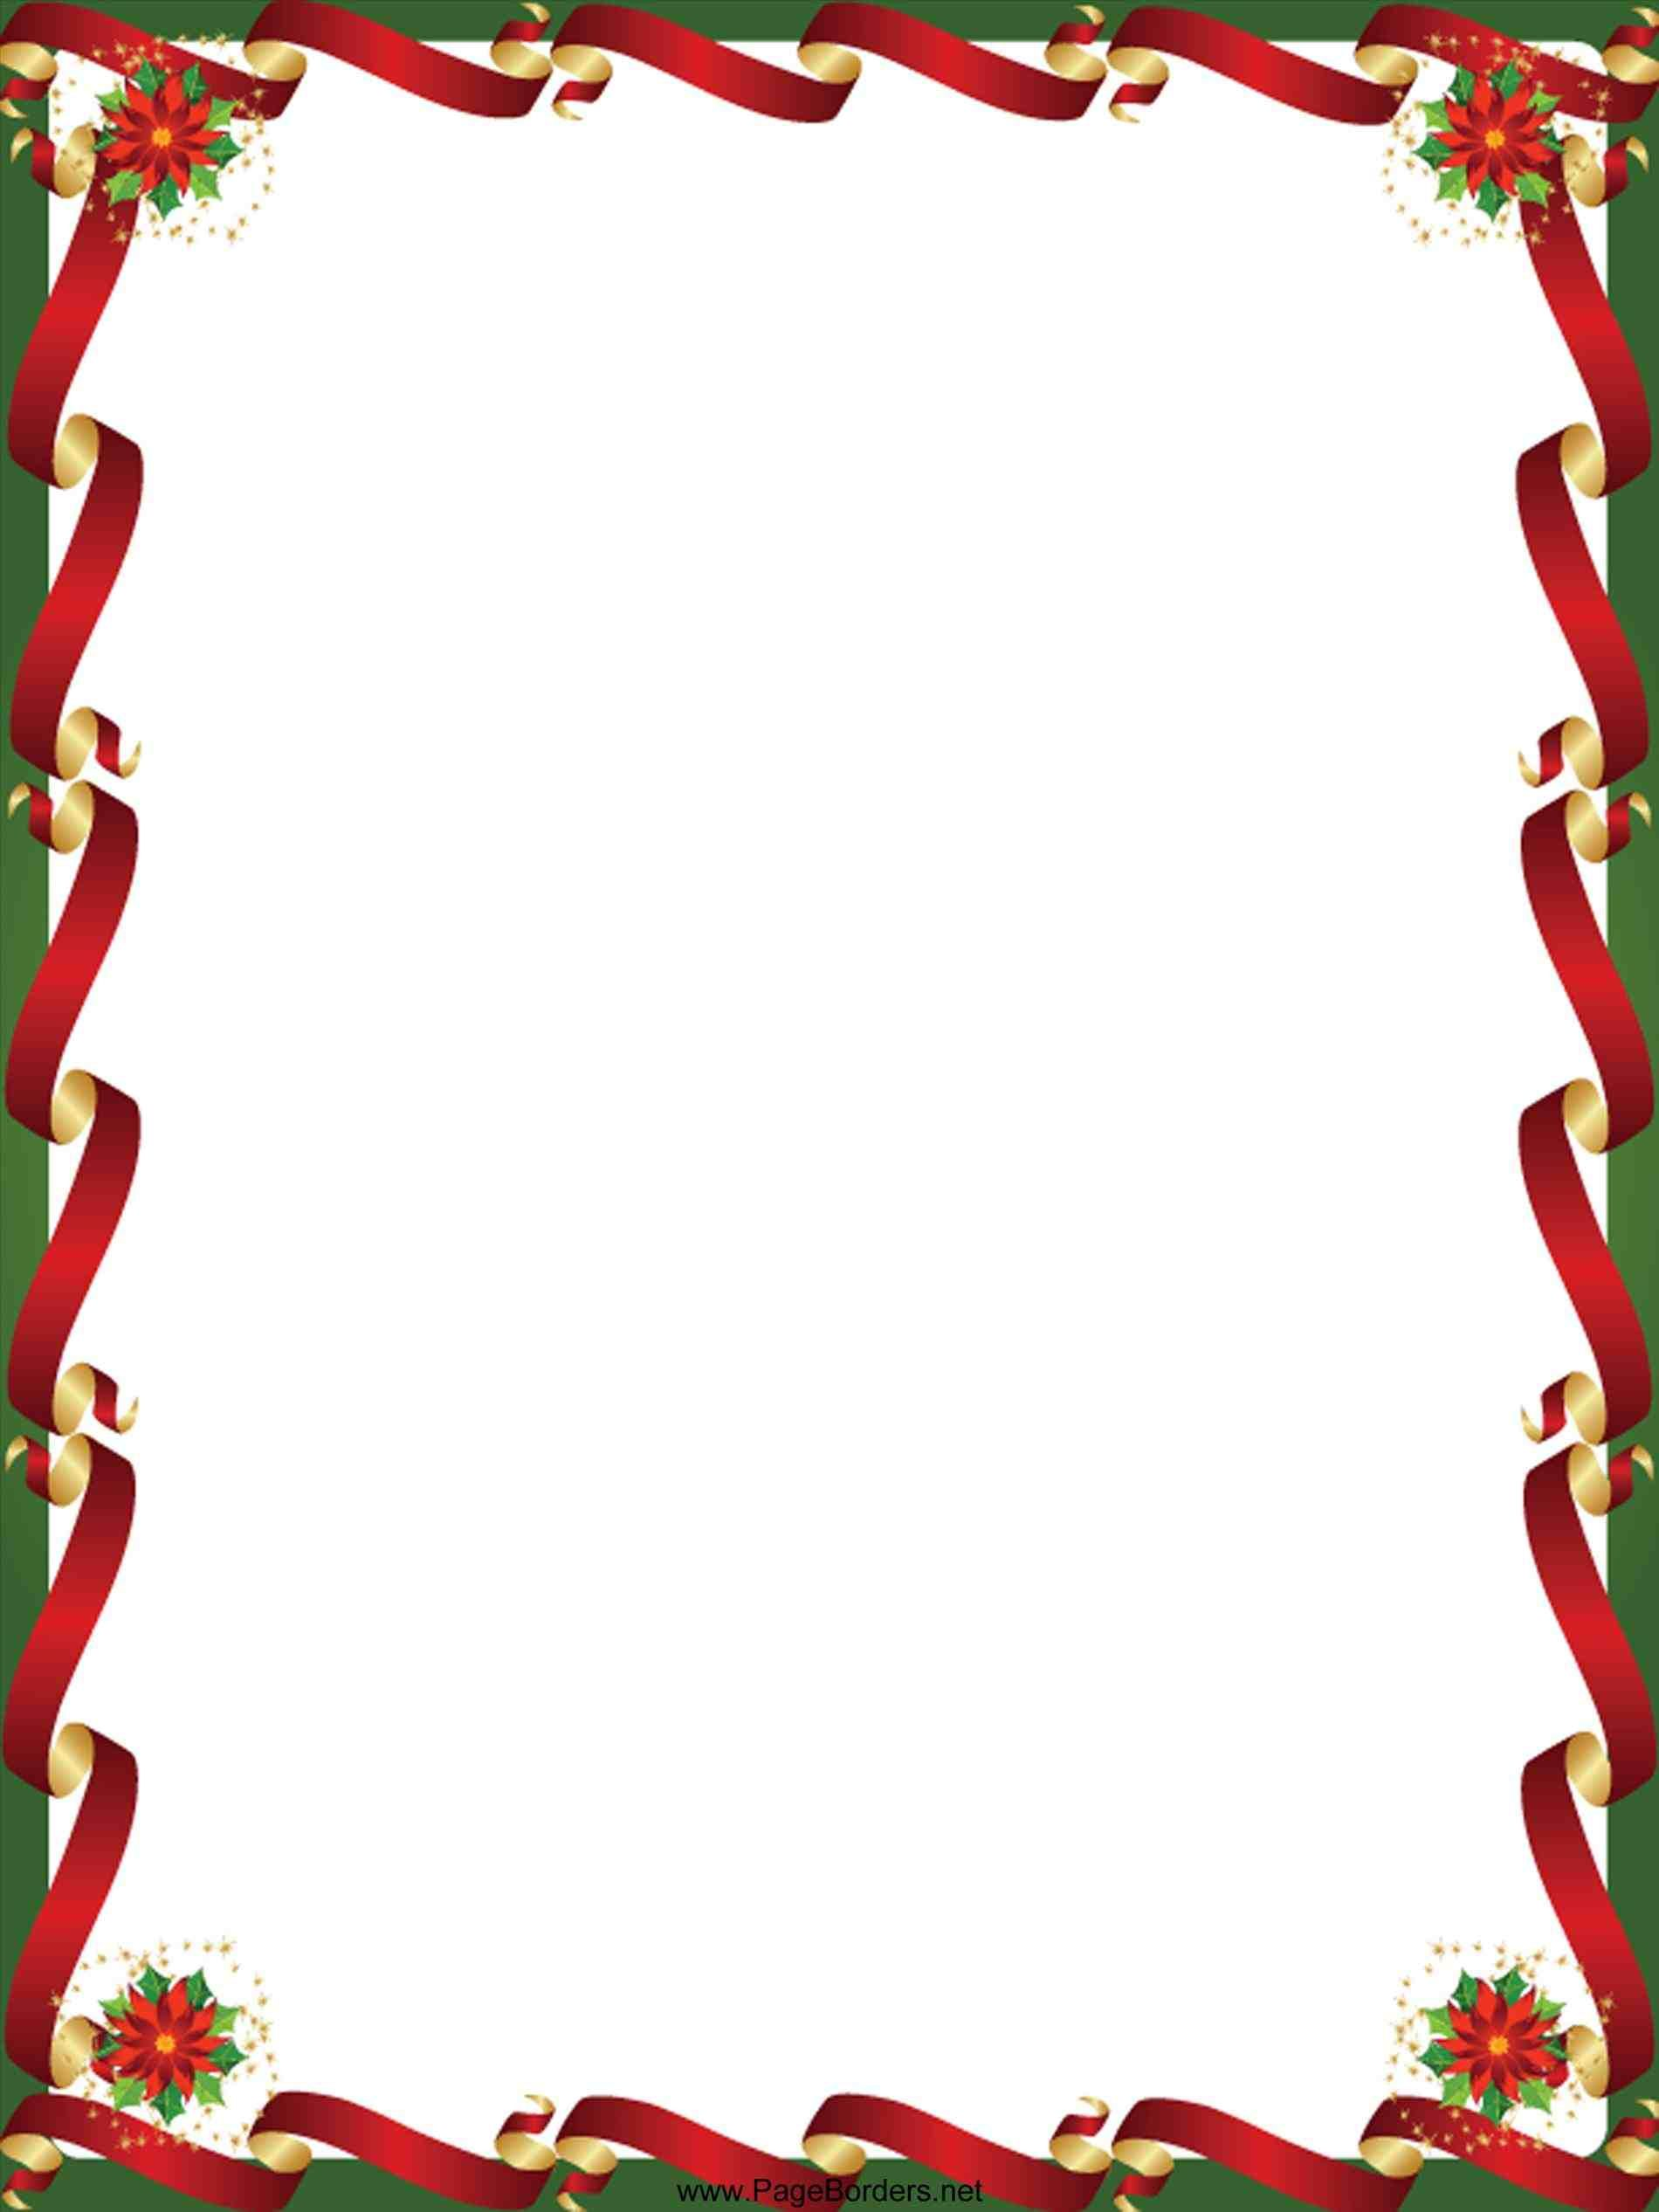 New free christmas border templates download at temasistemi.net ...